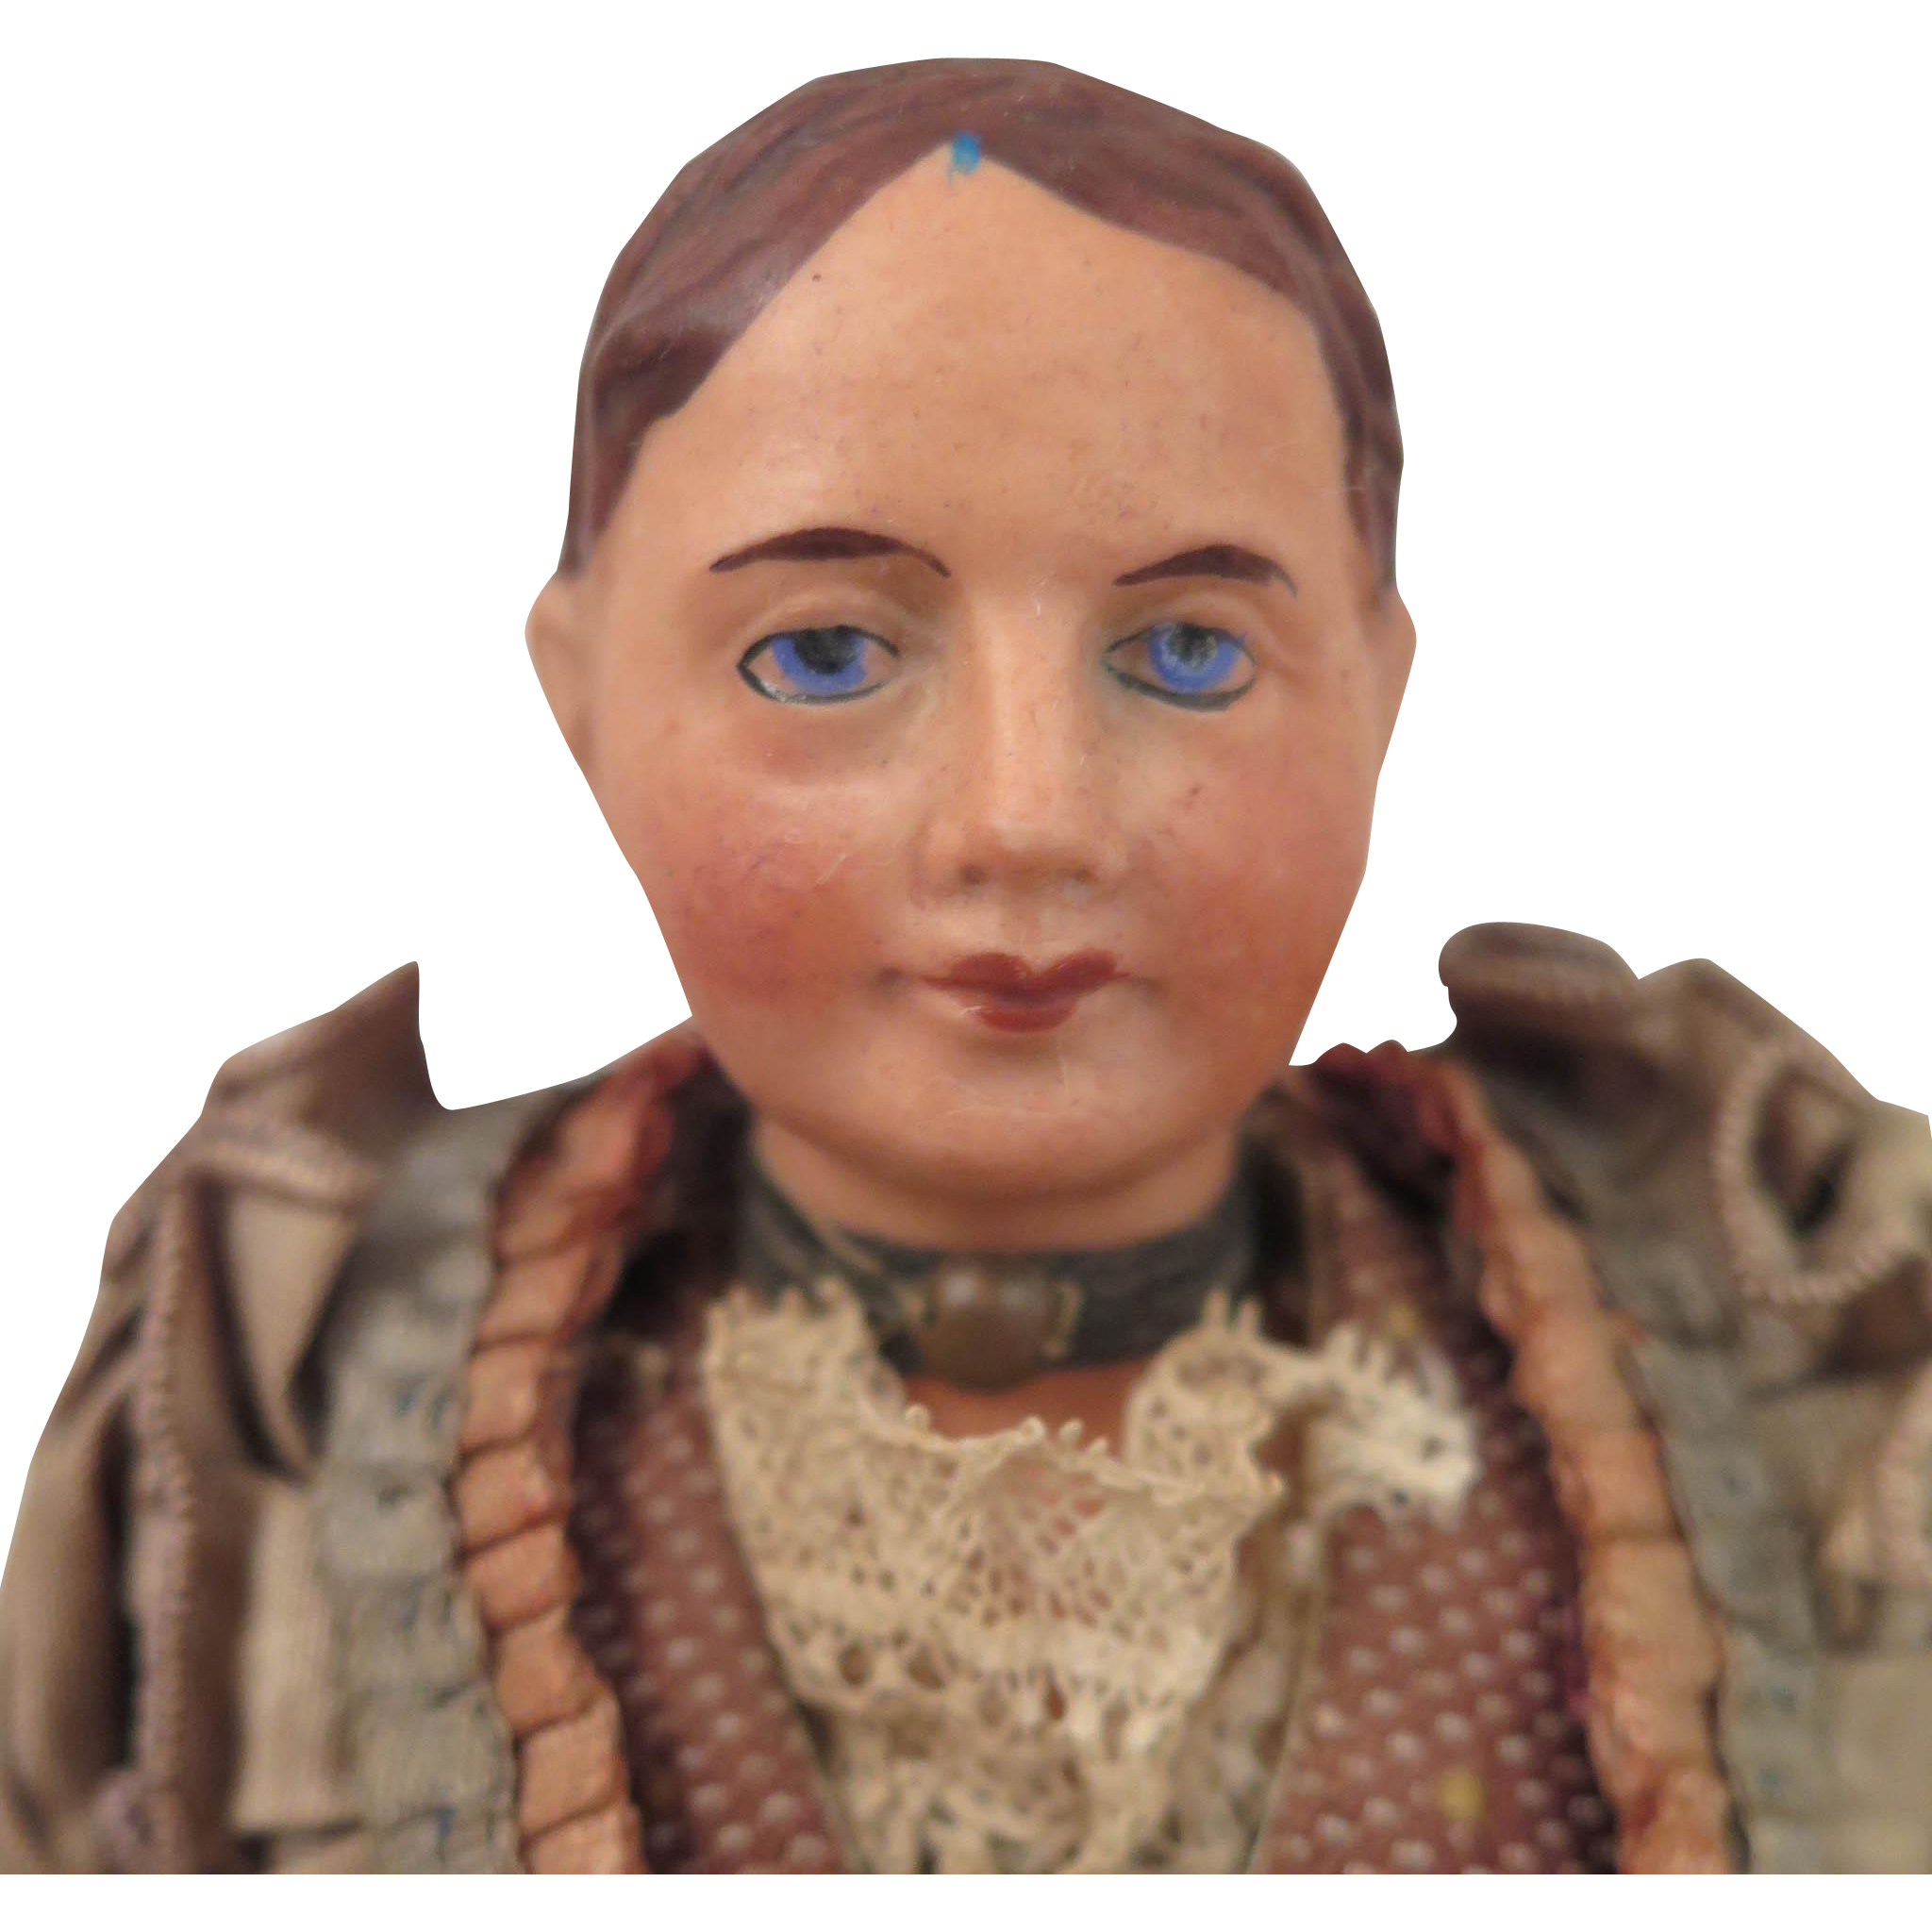 Belgian Doll in Regional Costume 8.5 inch